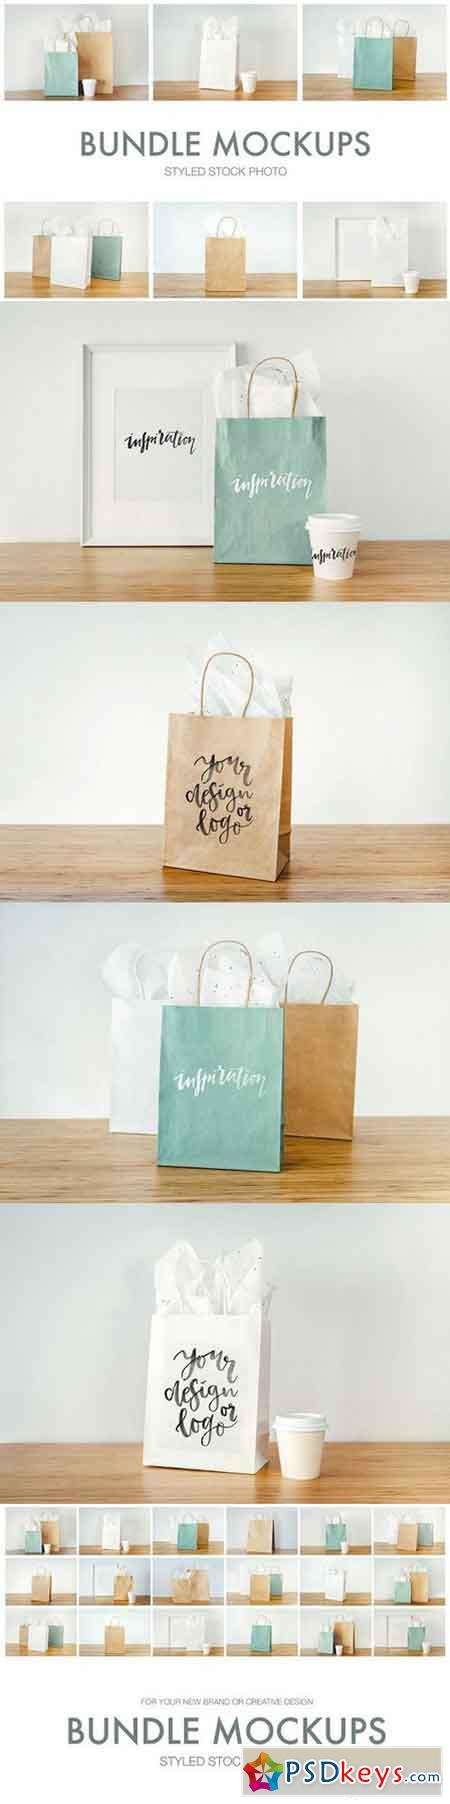 Mockups bags, cups and frames 1674545